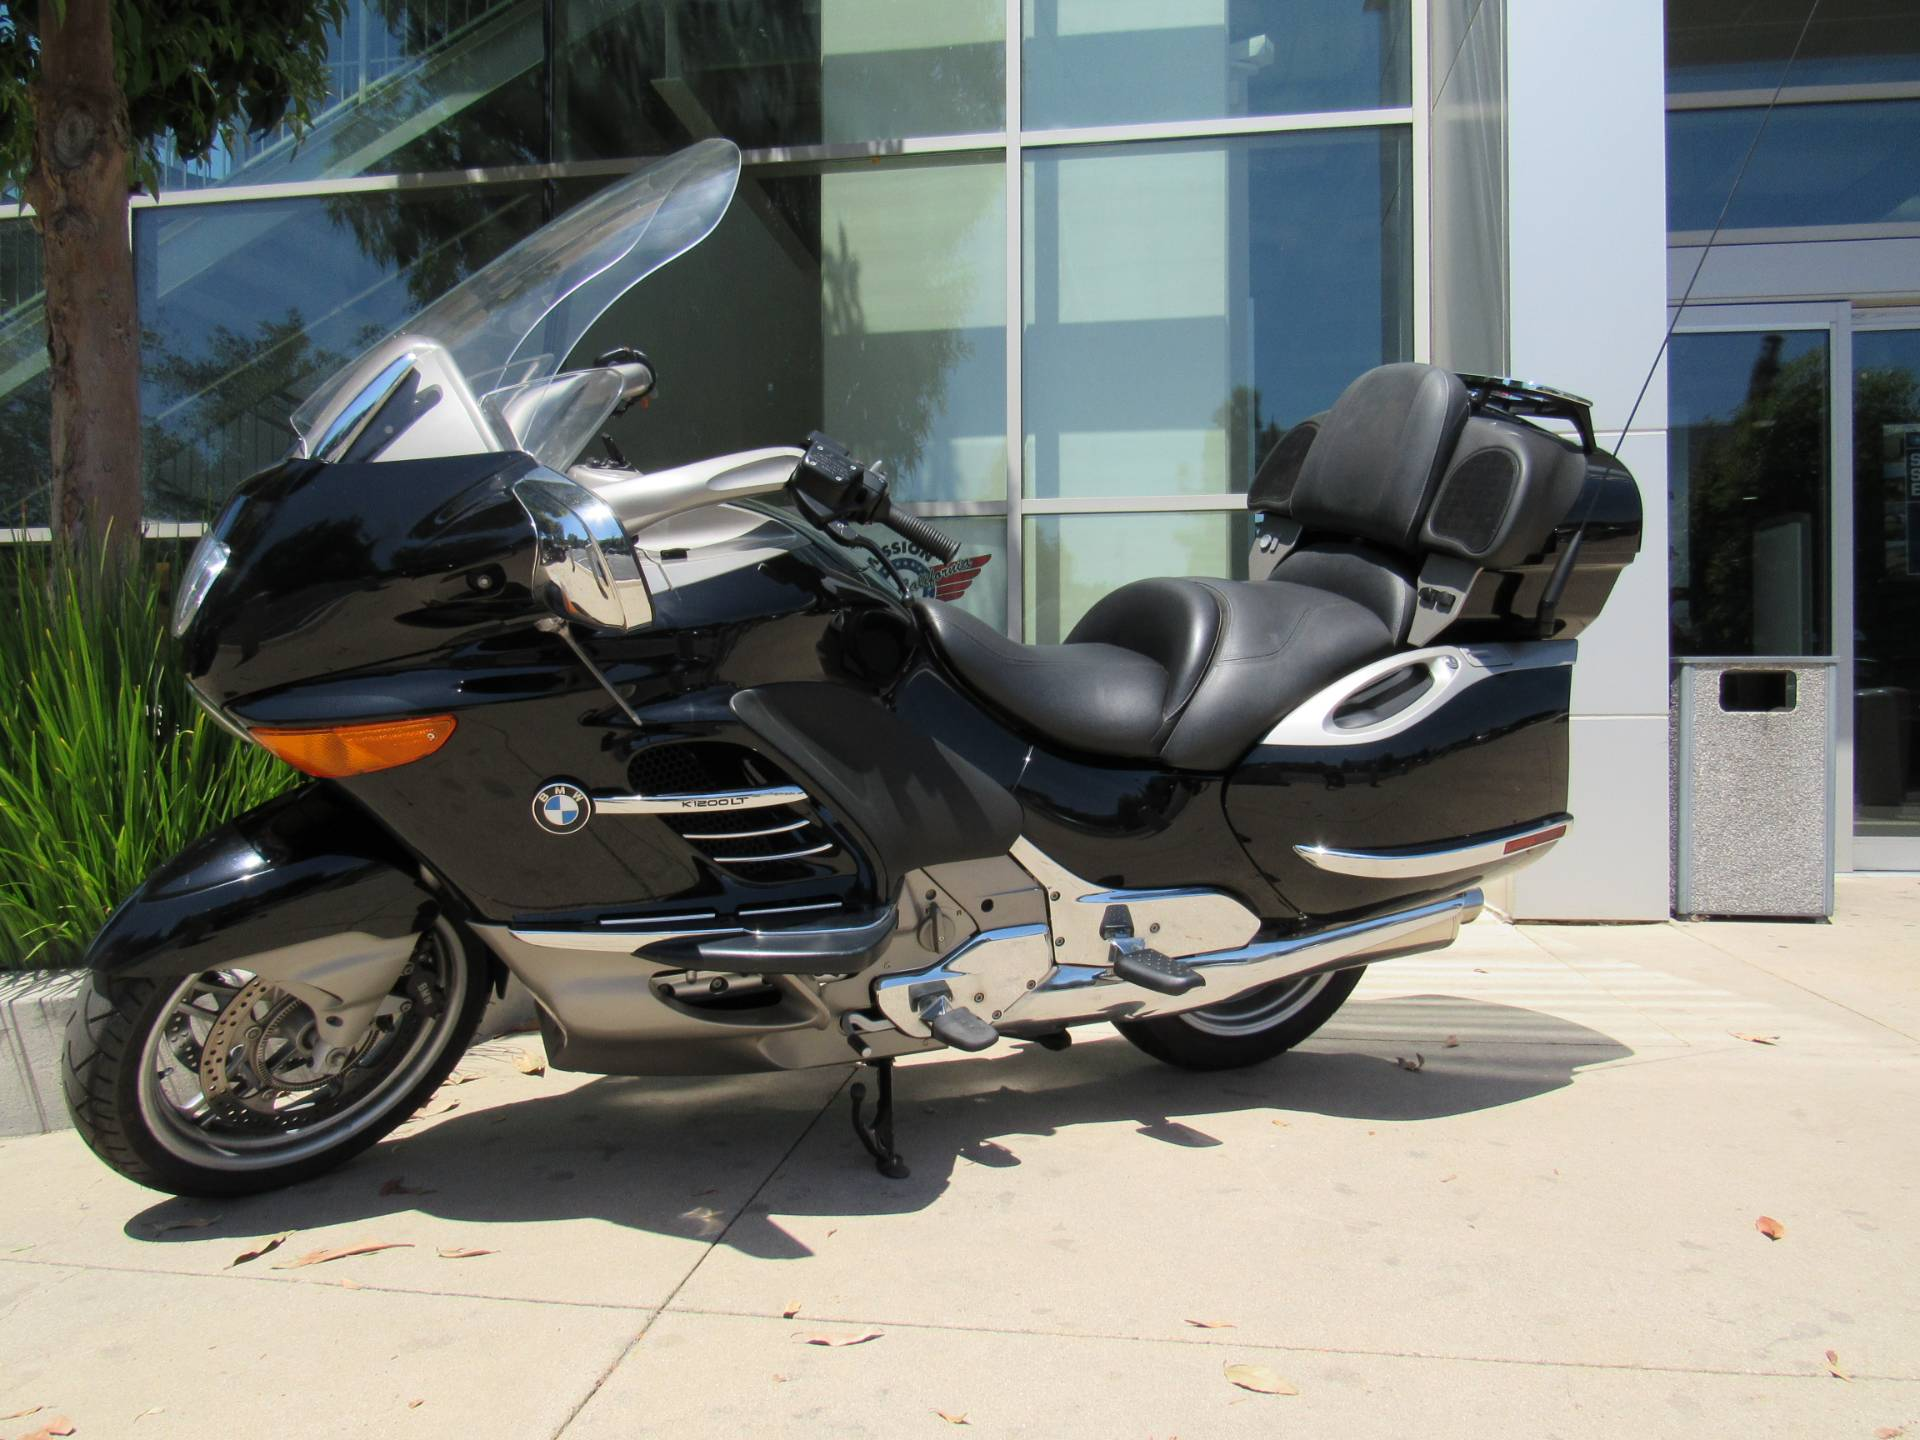 2007 BMW K 1200 LT in Irvine, California